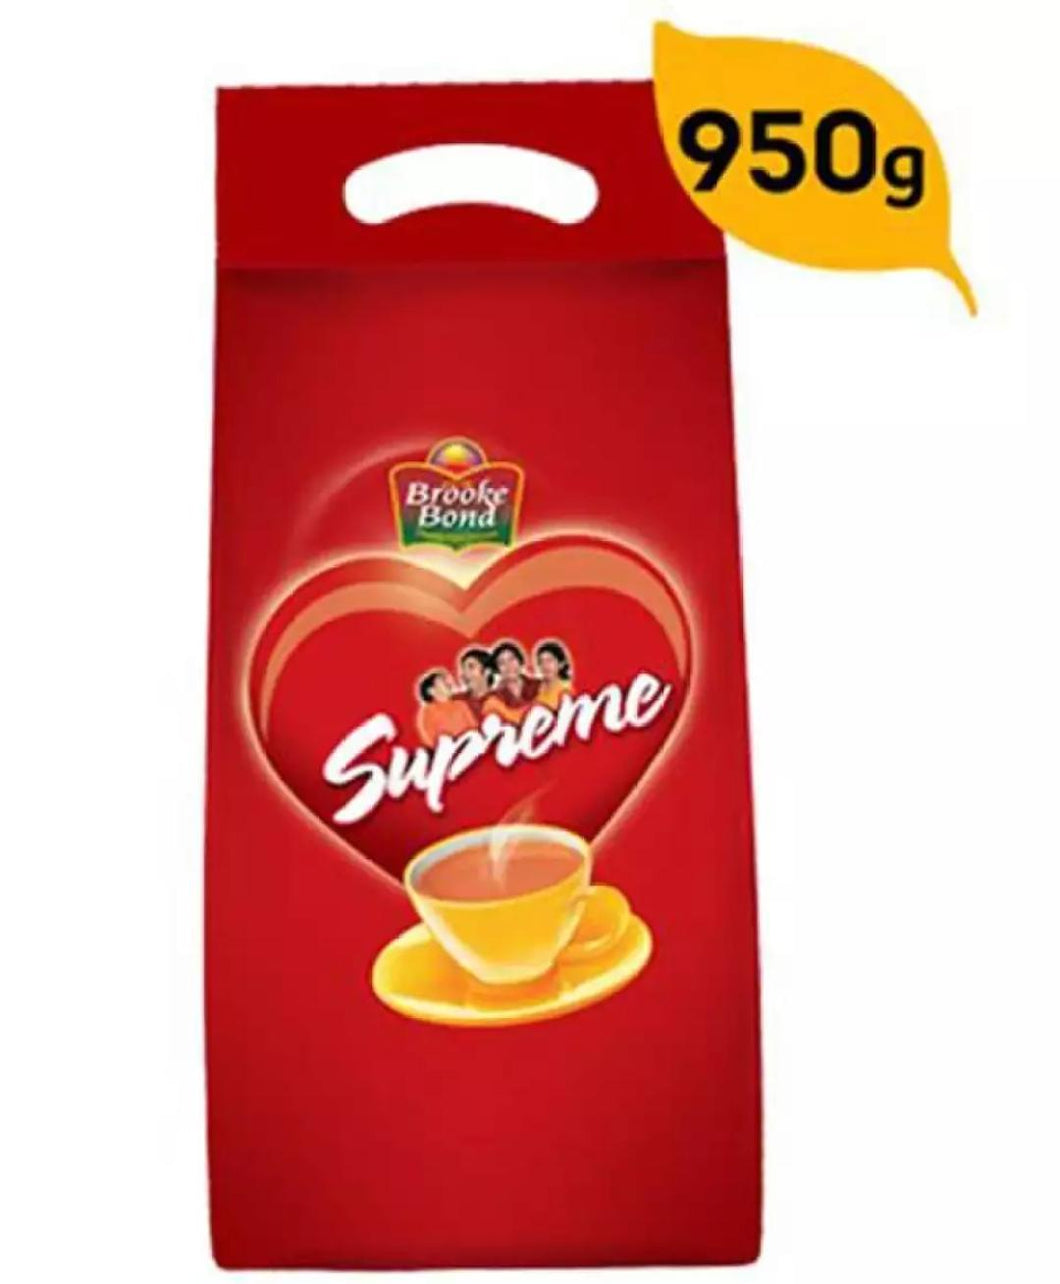 Brooke Bond Supreme Black Tea 950g